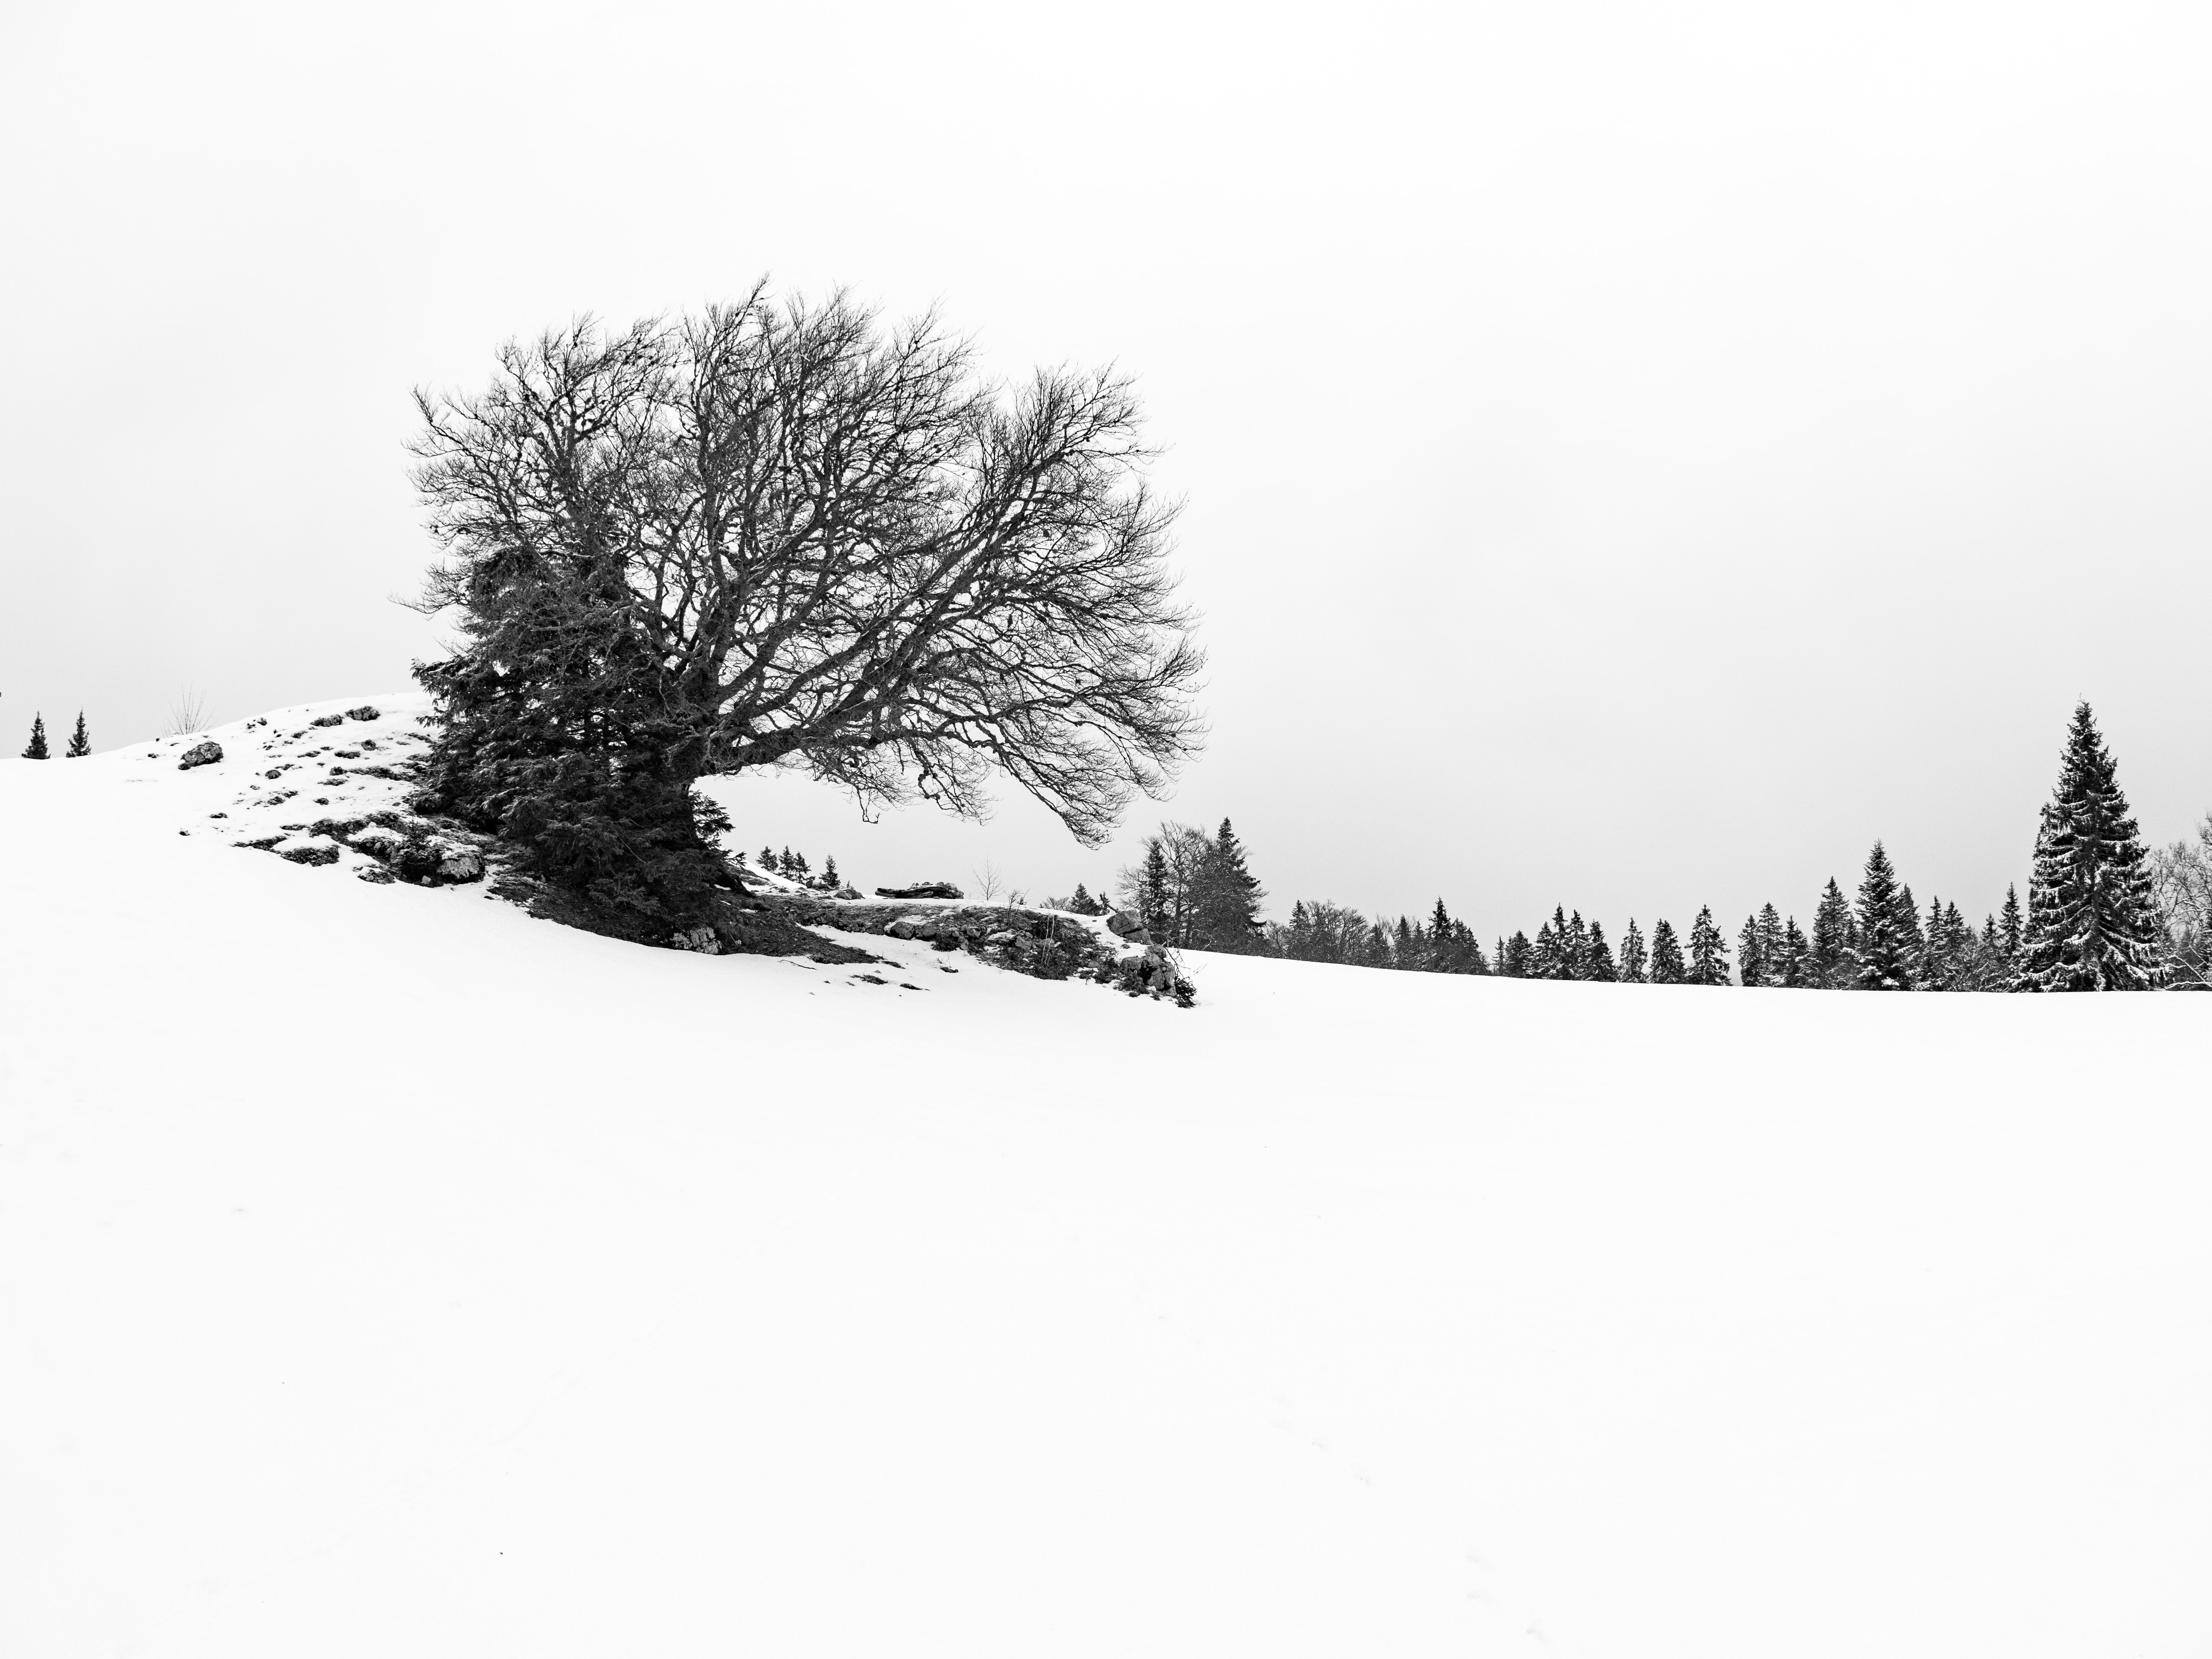 grayscale photography of bare trees on snow field during daytime